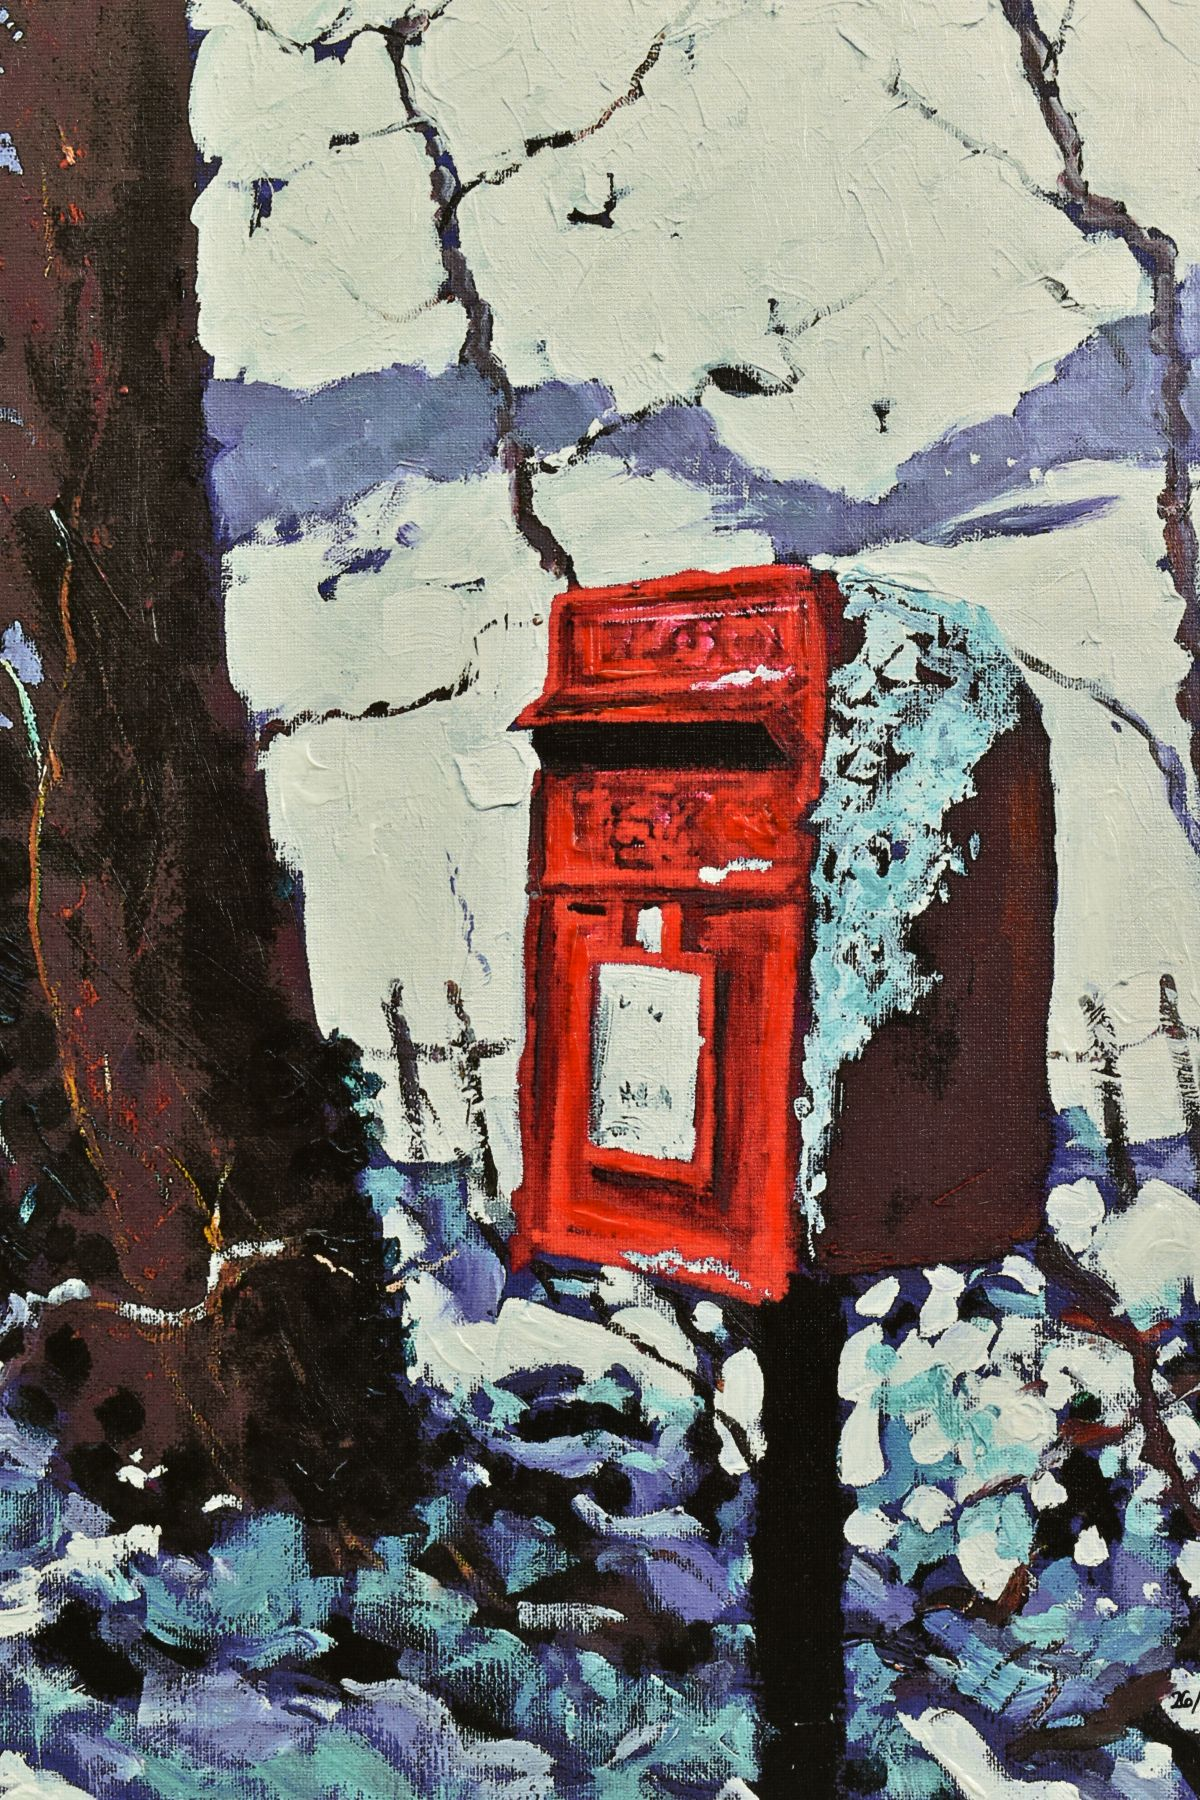 TIMMY MALLETT (BRITISH CONTEMPORARY), 'Snowy Post Box', a Limited Edition print, 26/195, signed - Image 2 of 5